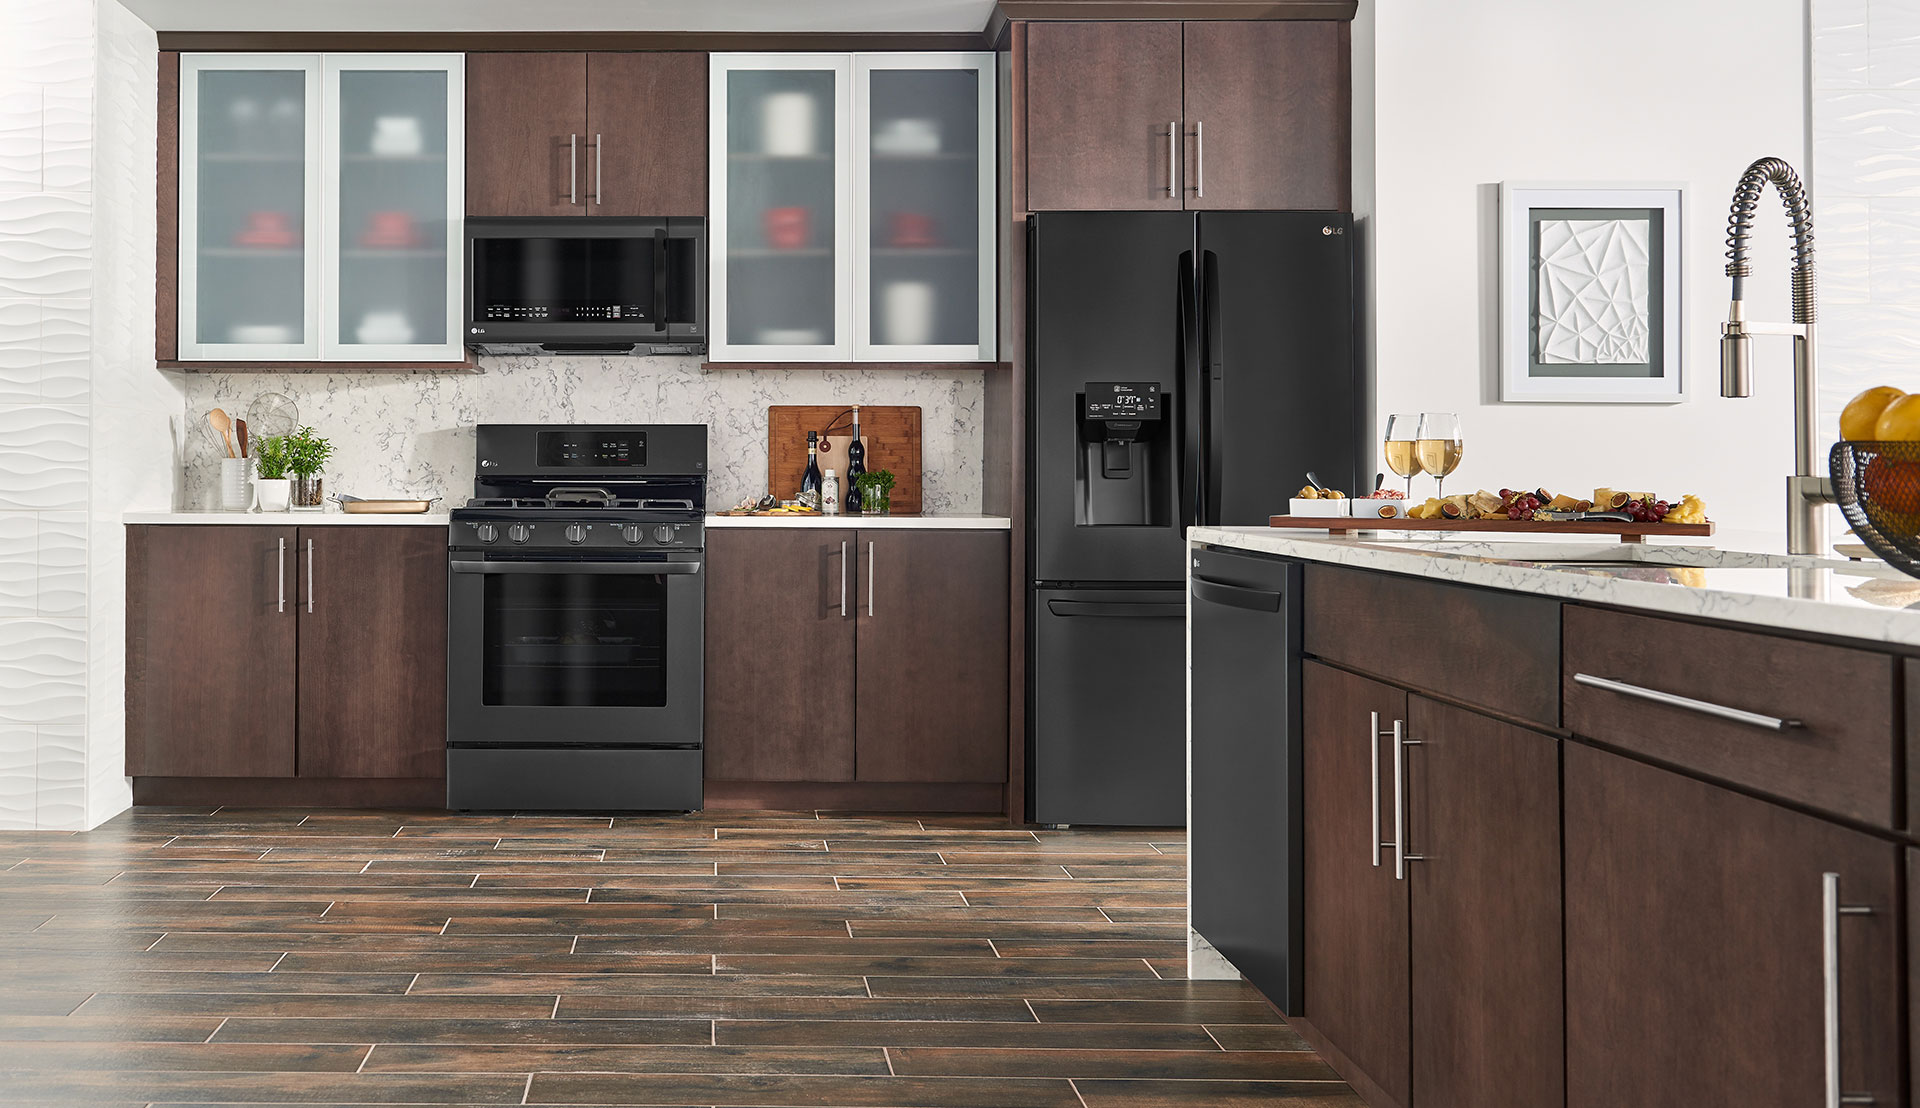 Kitchens With Black Appliances And Oak Cabinets